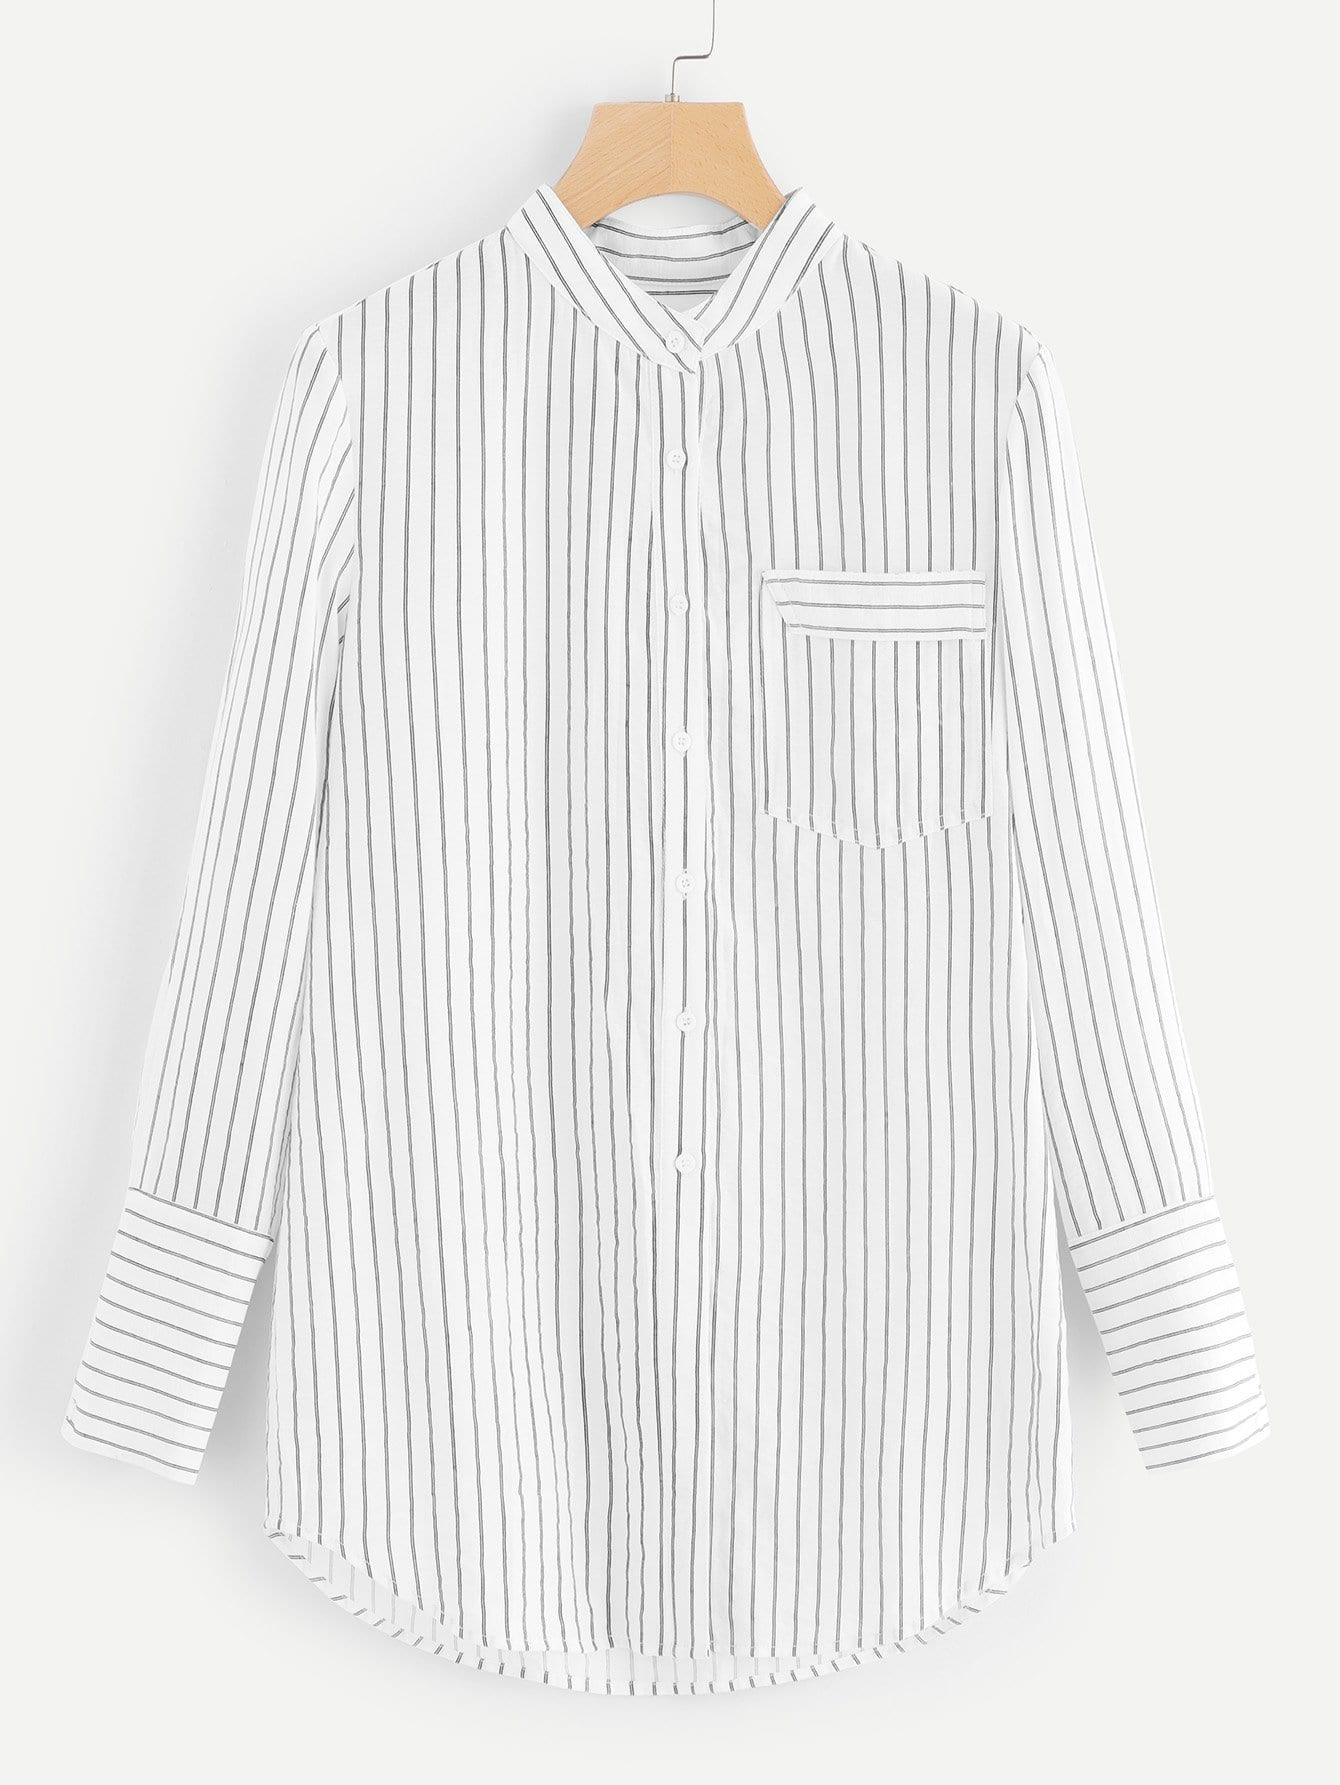 Pocket Patched Striped Shirt pocket patched striped shell shirt